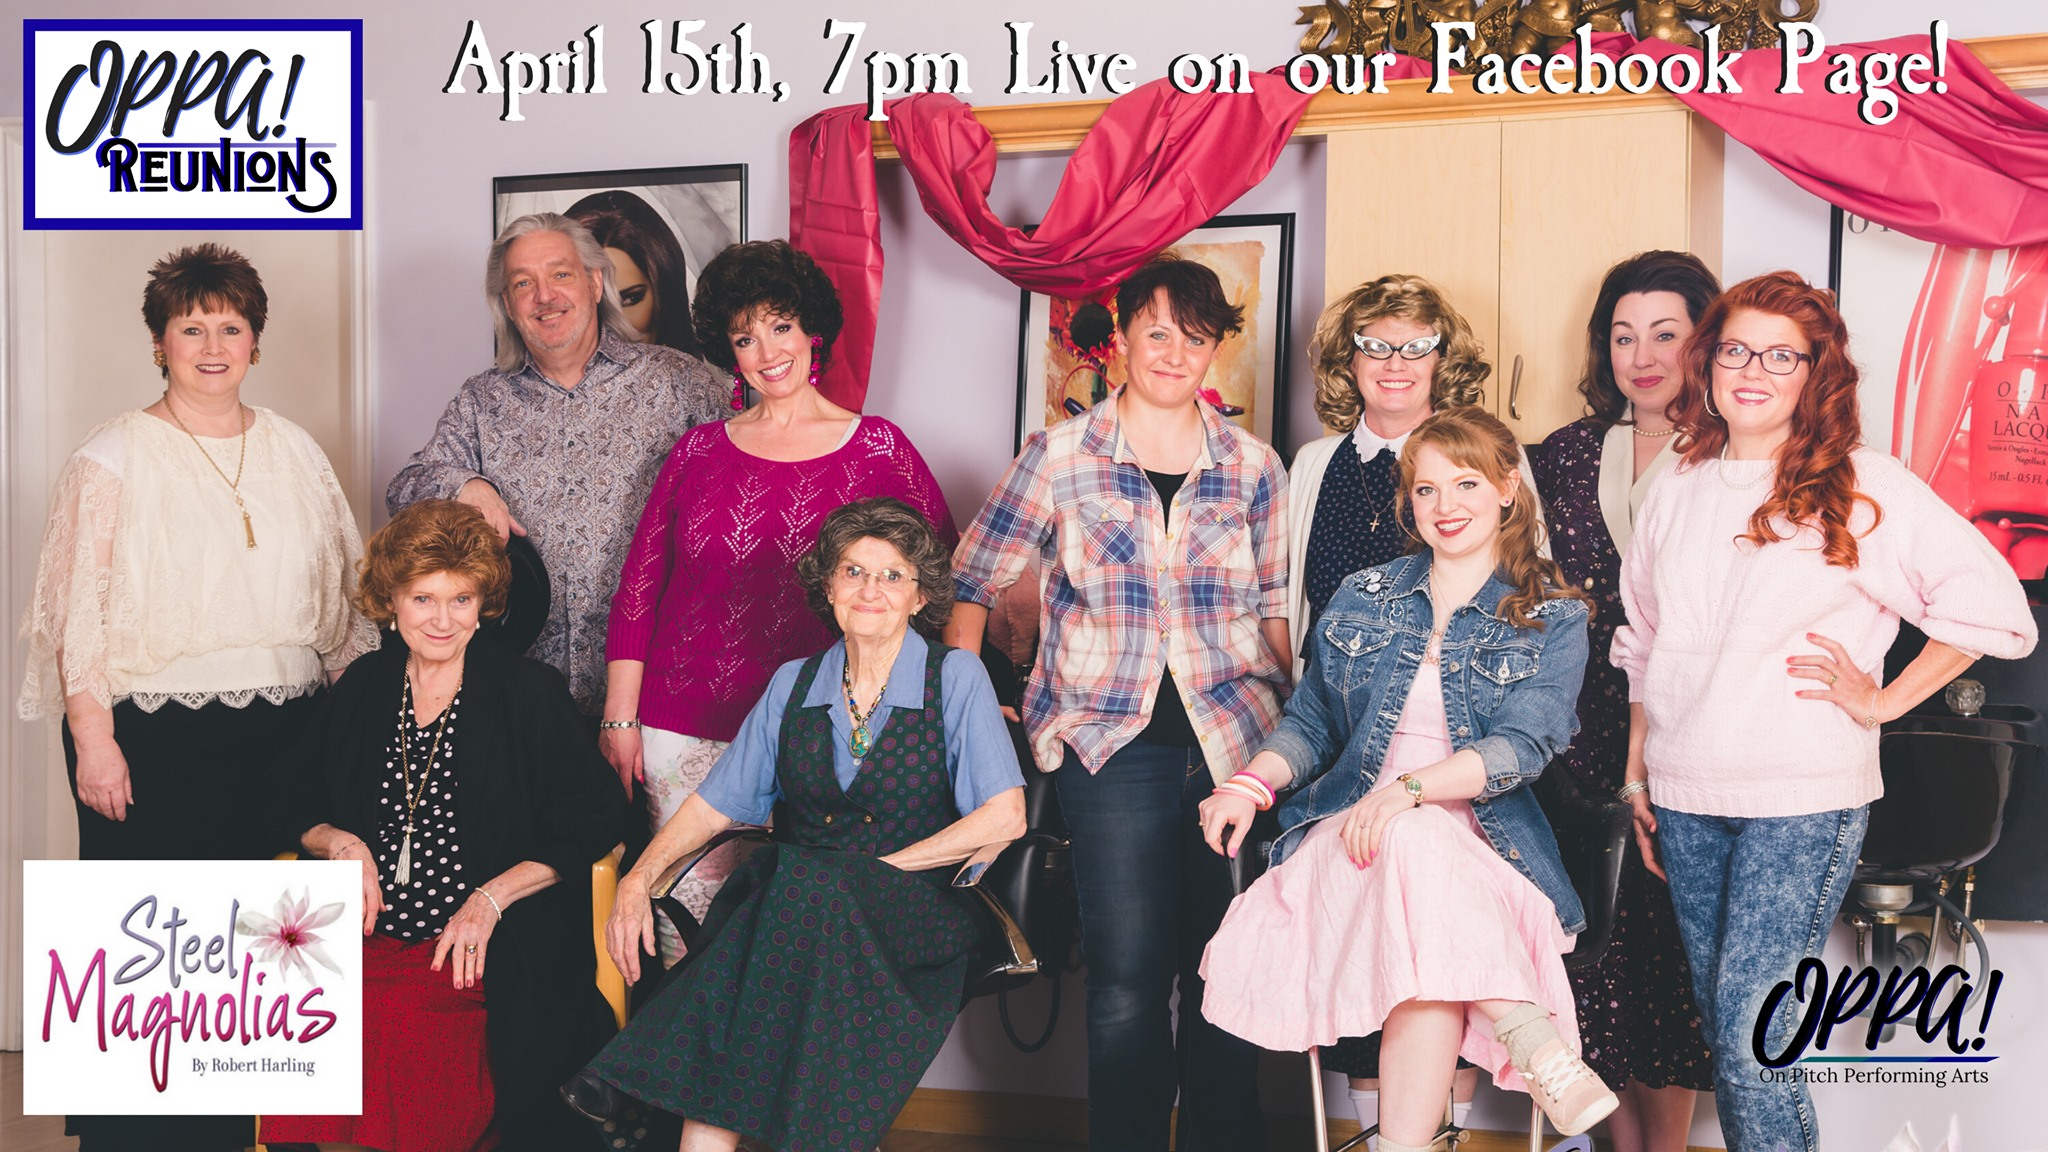 Oppa Reunions Steel Magnolias Cast Presented By On Pitch